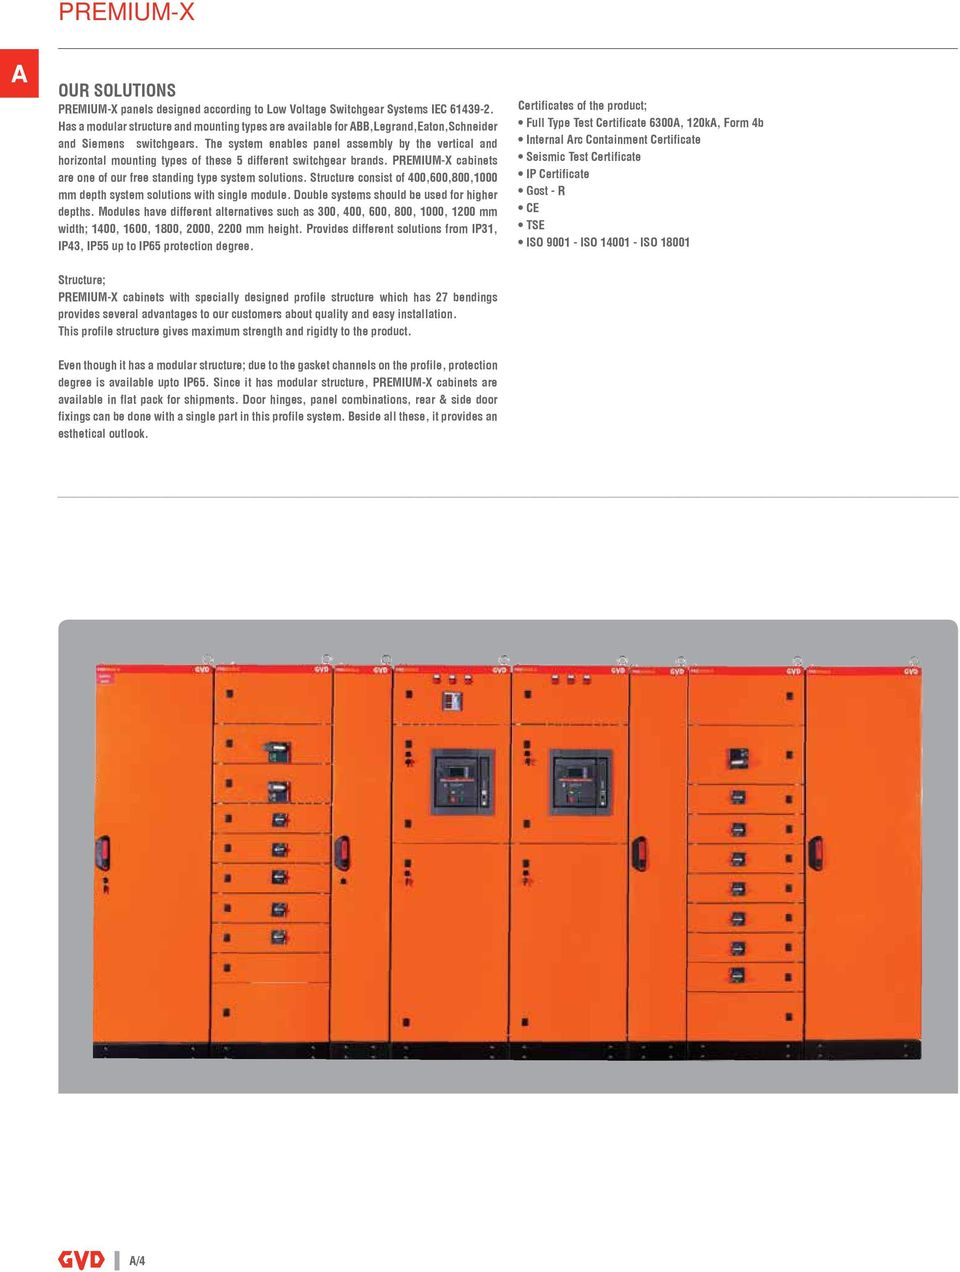 The system enables panel assembly by the vertical and horizontal mounting types of these 5 different switchgear brands. PREMIUM-X cabinets are one of our free standing type system solutions.